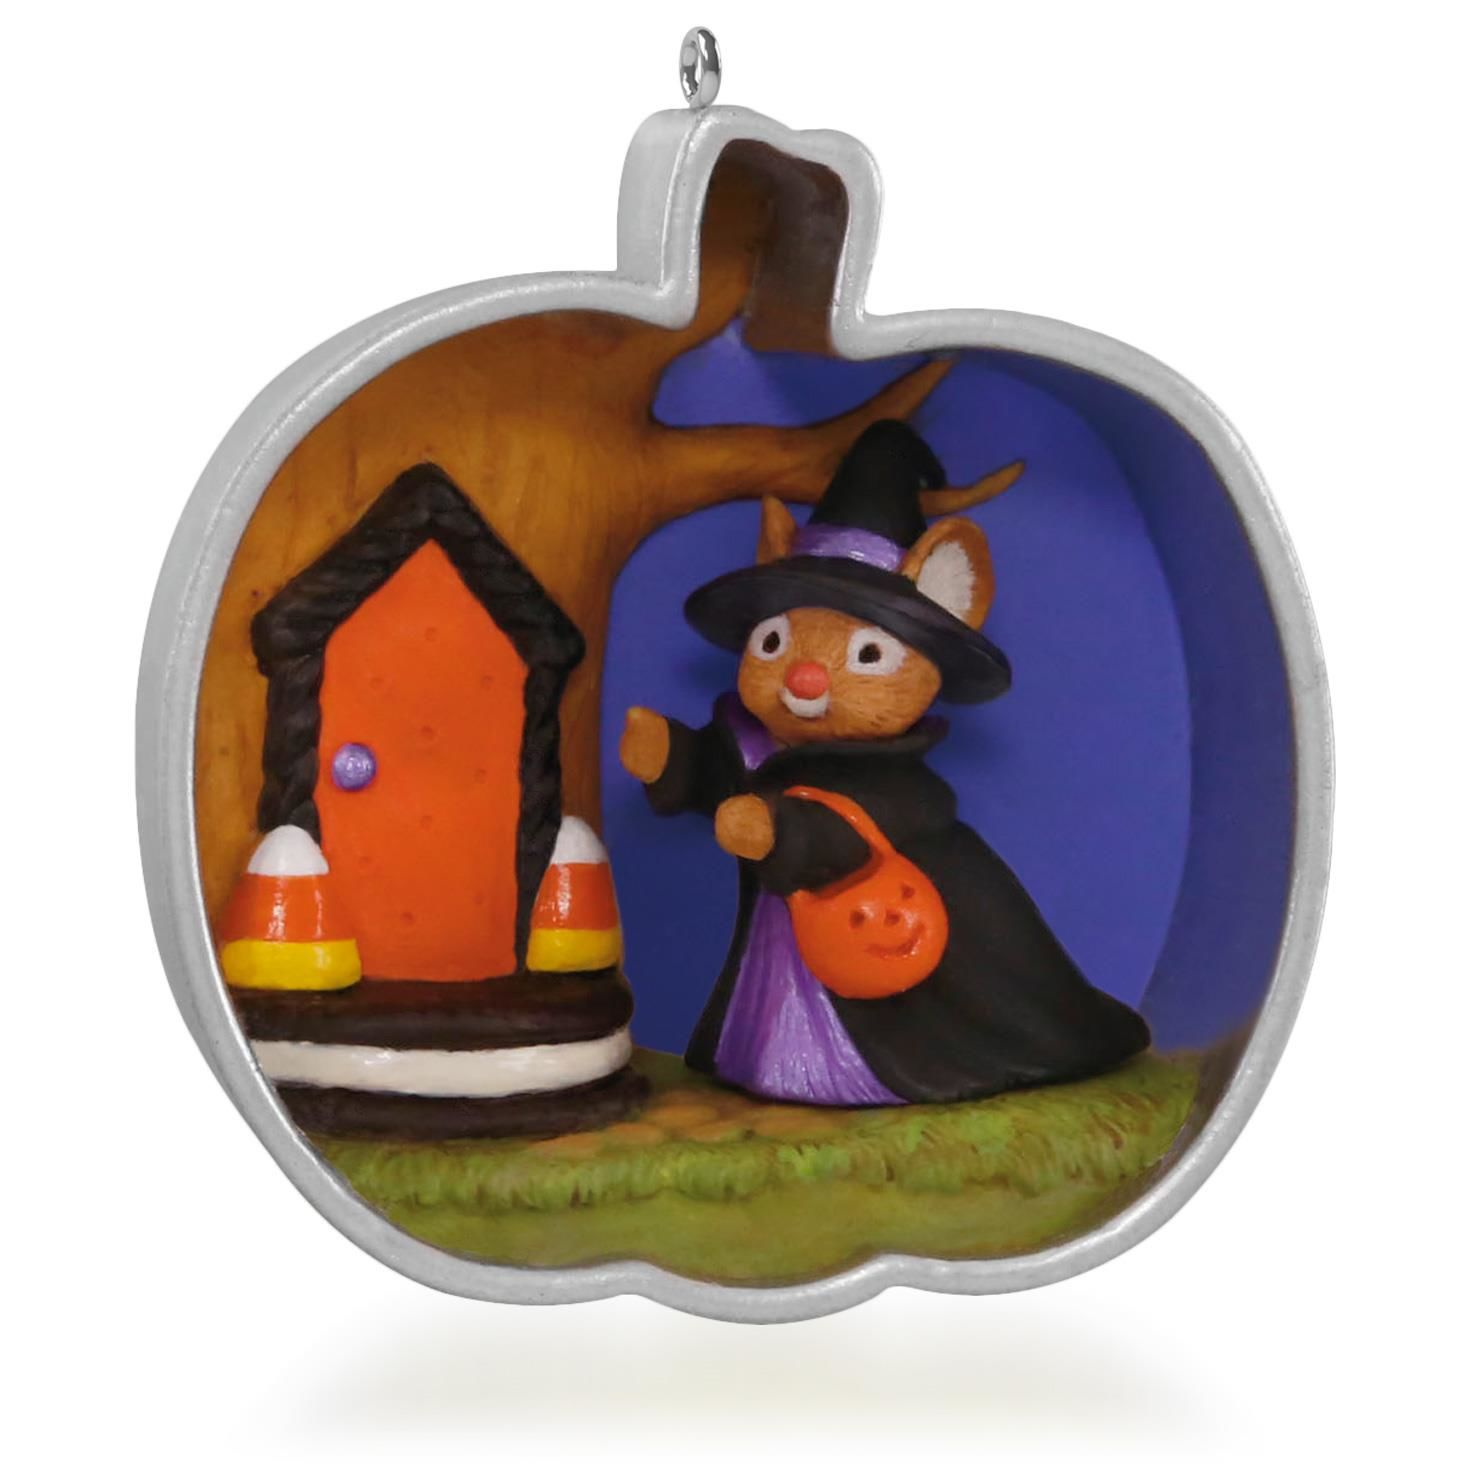 2015 Cookie Cutter Halloween Hallmark Keepsake Ornament - Hooked ...